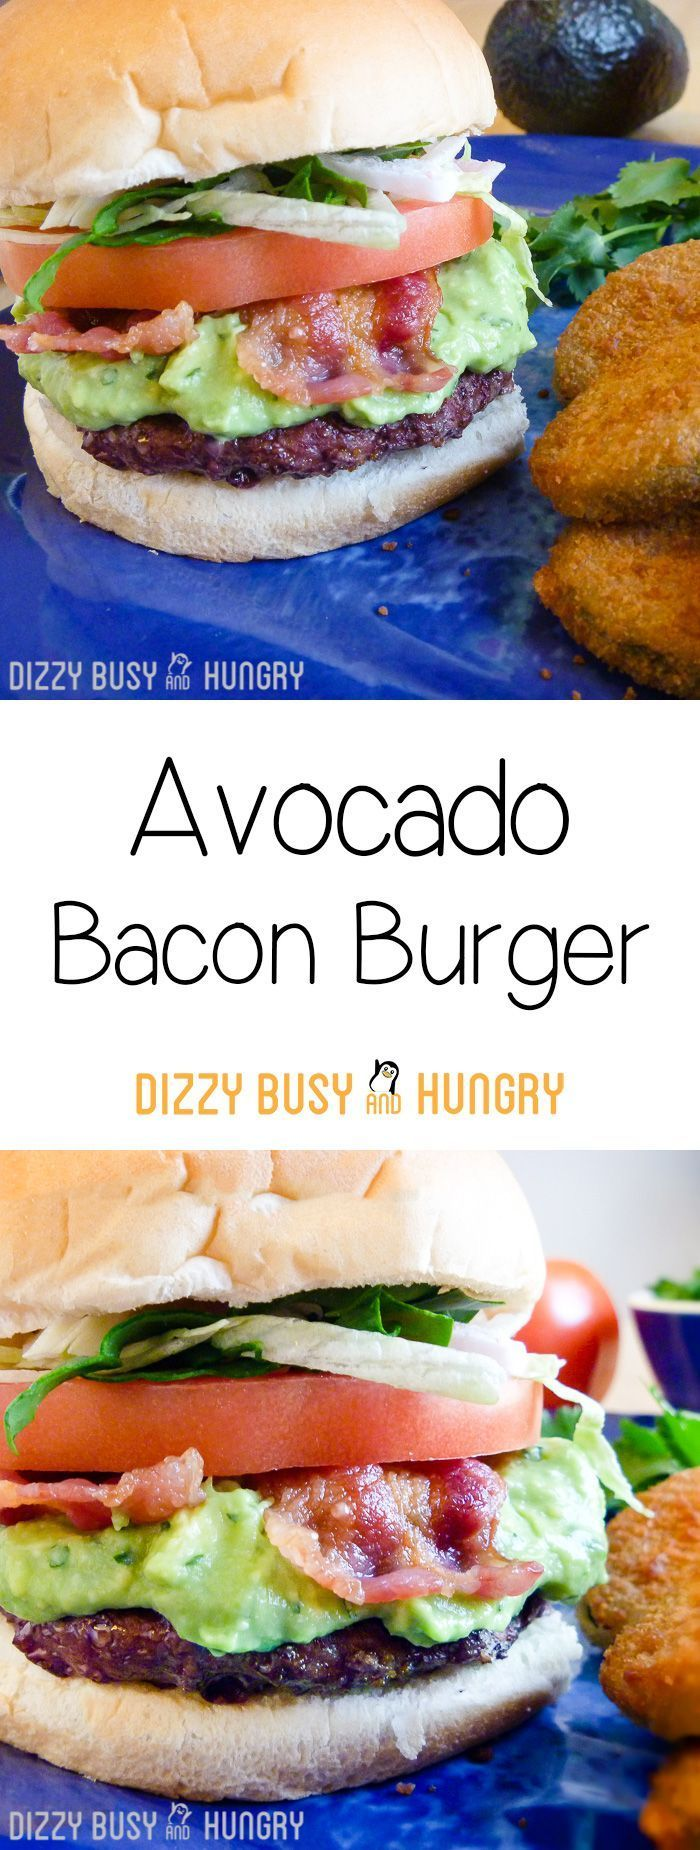 Avocado Bacon Burgers http://www.dizzybusyandhungry.com/avocado-bacon-burgers/ #sponsored